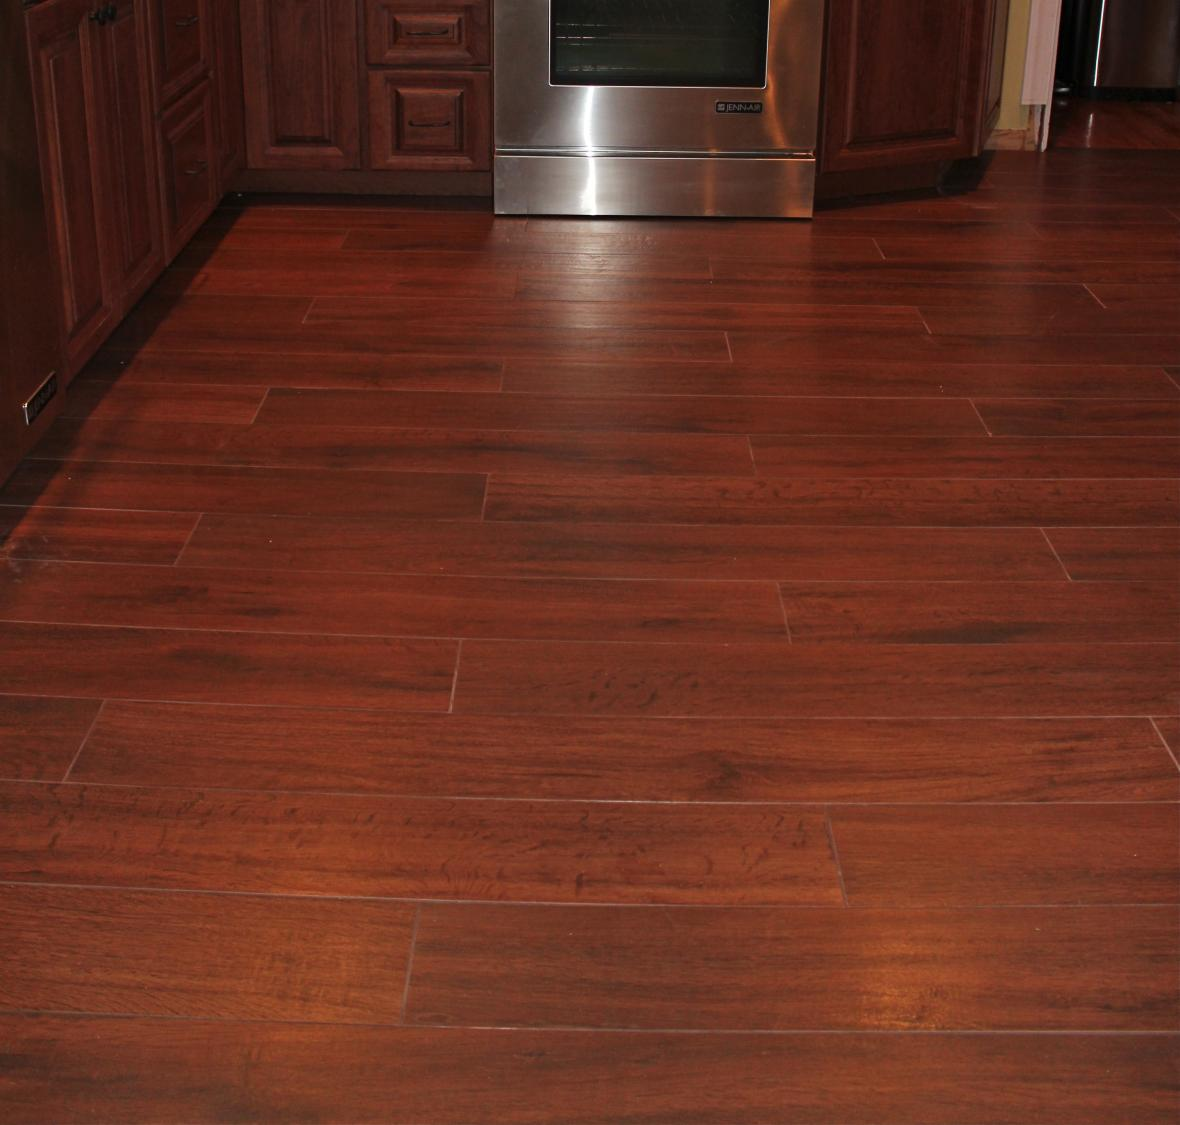 All Products Bath Tile Wall Floor Tile . - Alfa Img Showing Gt Floor Transition Tile To Wood Botanica Cashew